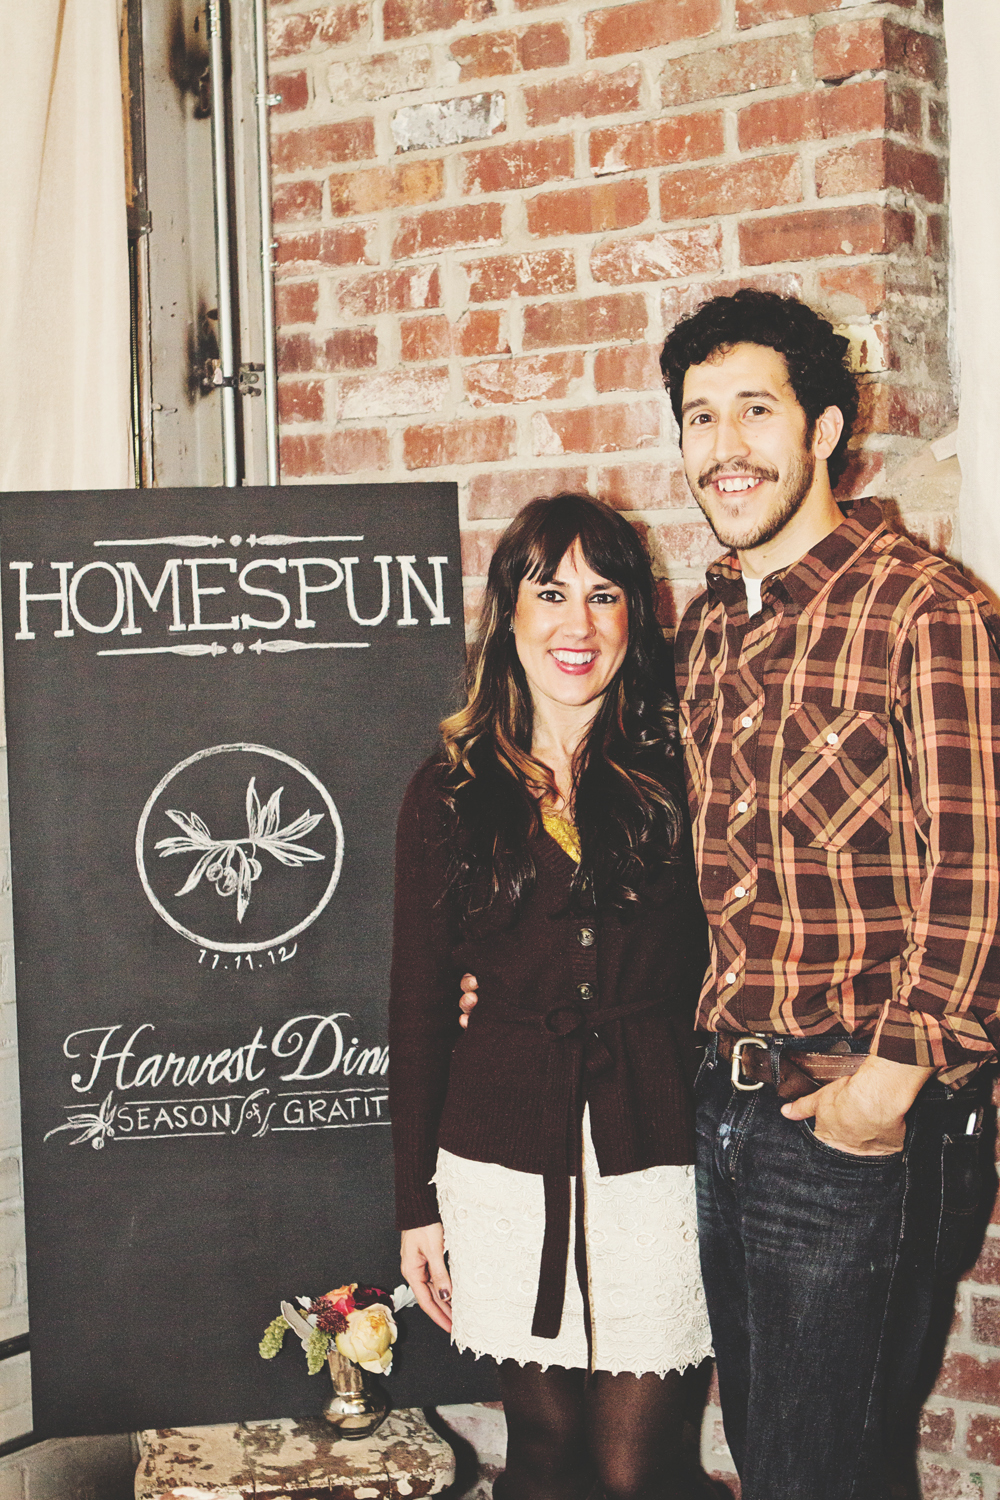 Homespun ATL Dinner Nov 2012 Atlanta, GA Photography by Whitney Huynh069.jpg